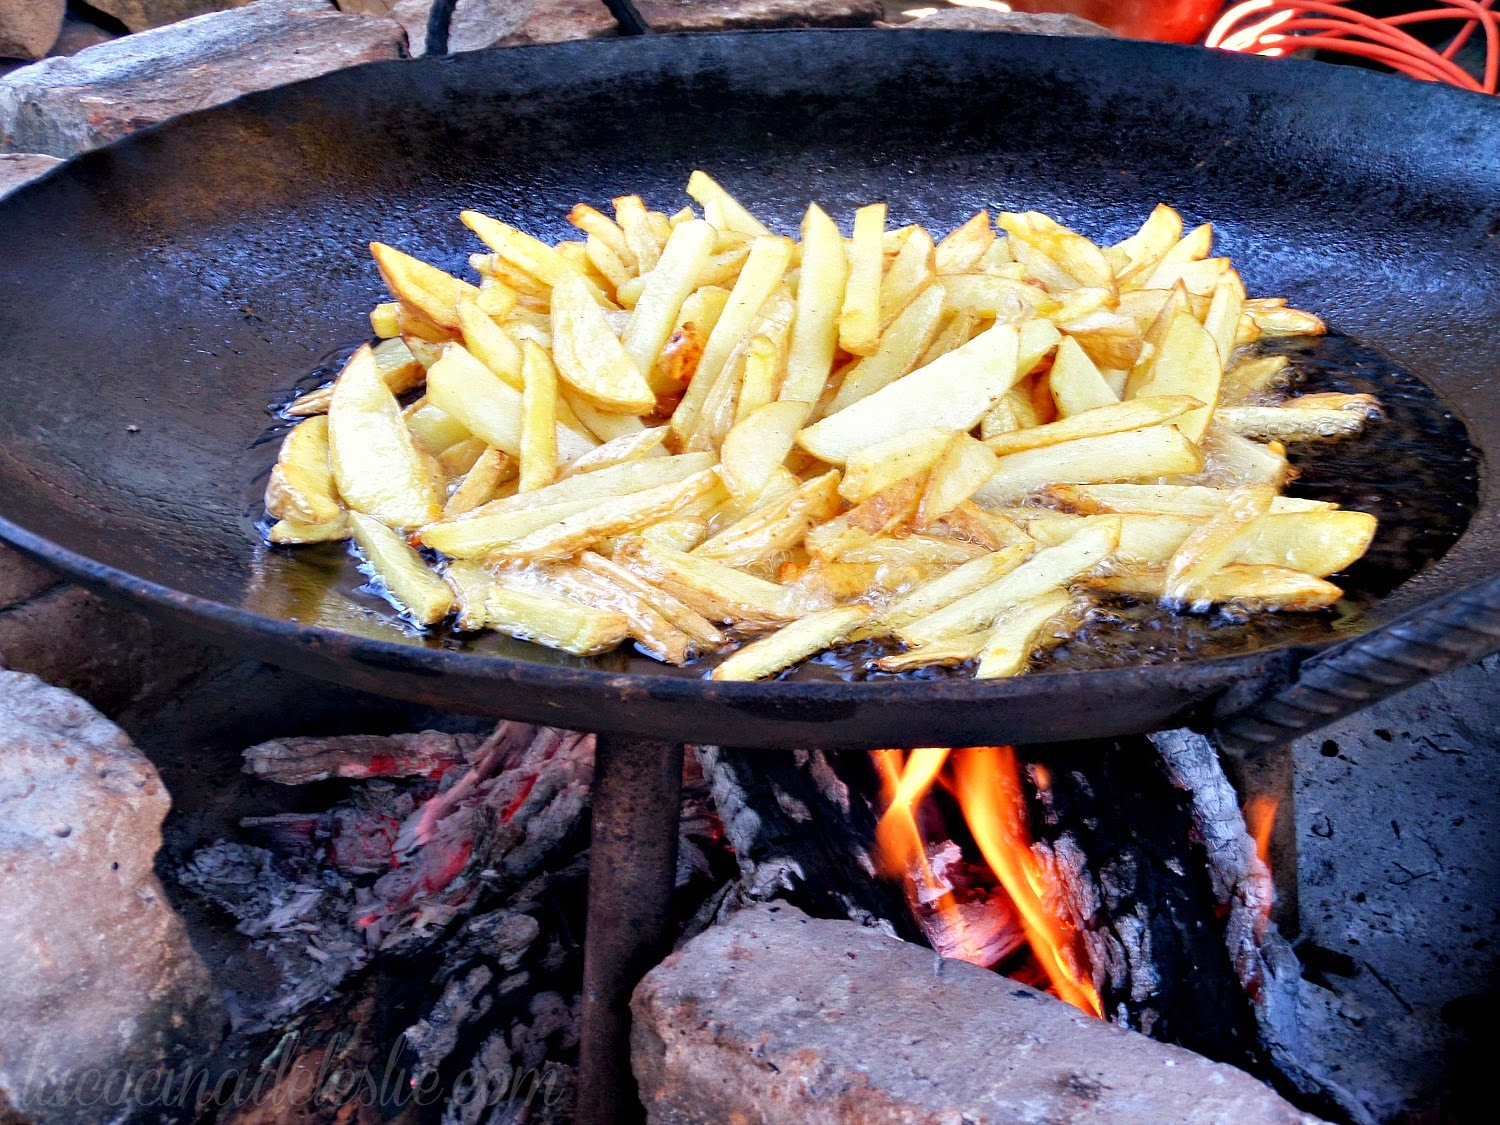 Campfire French Fries - lacocinadeleslie.com